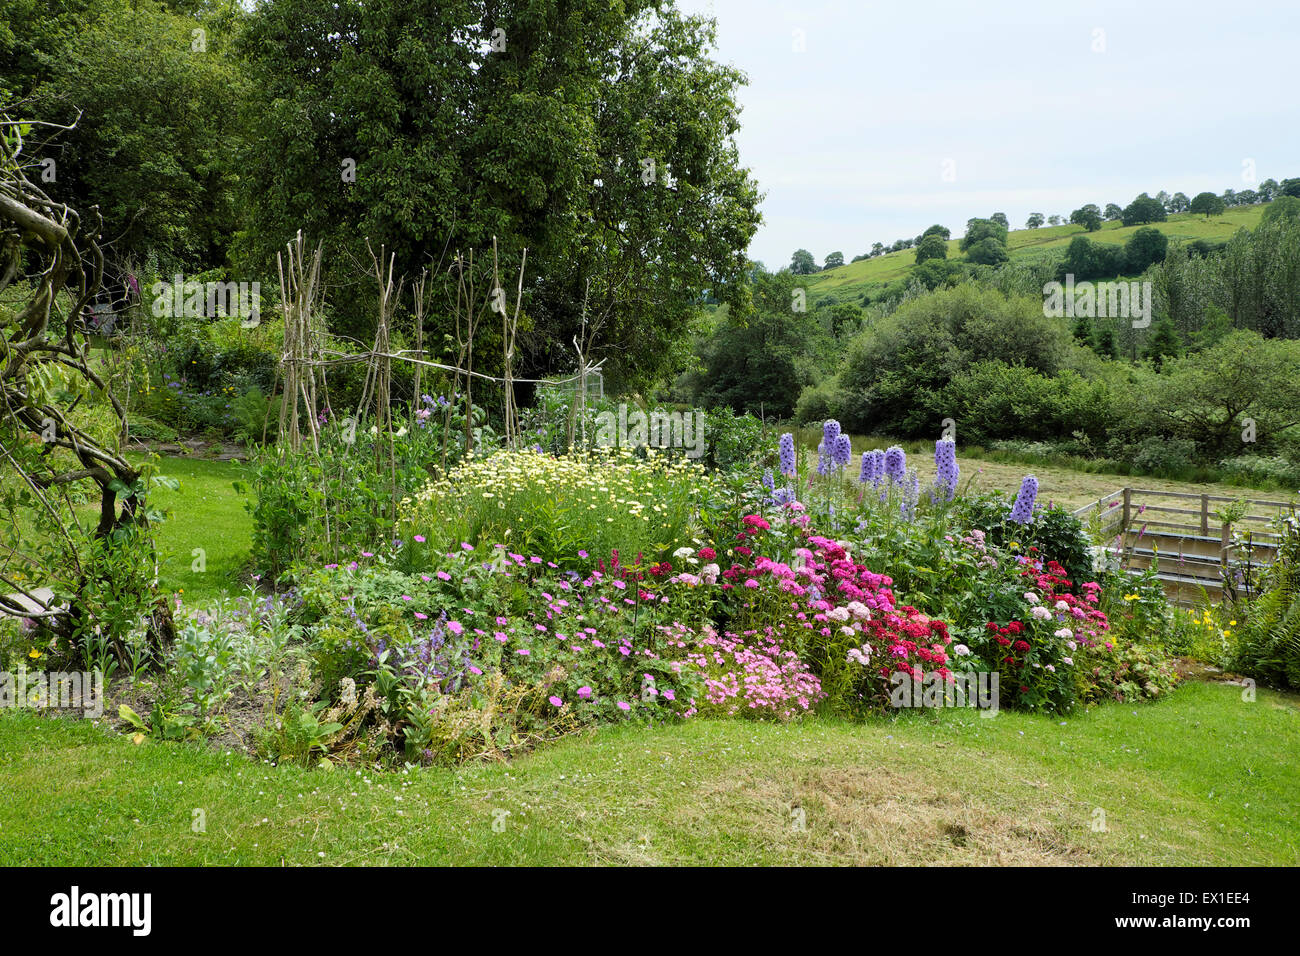 Colorful perennials in a herbaceous flower border in a rural country cottage garden Carmarthenshire Wales UK  KATHY - Stock Image